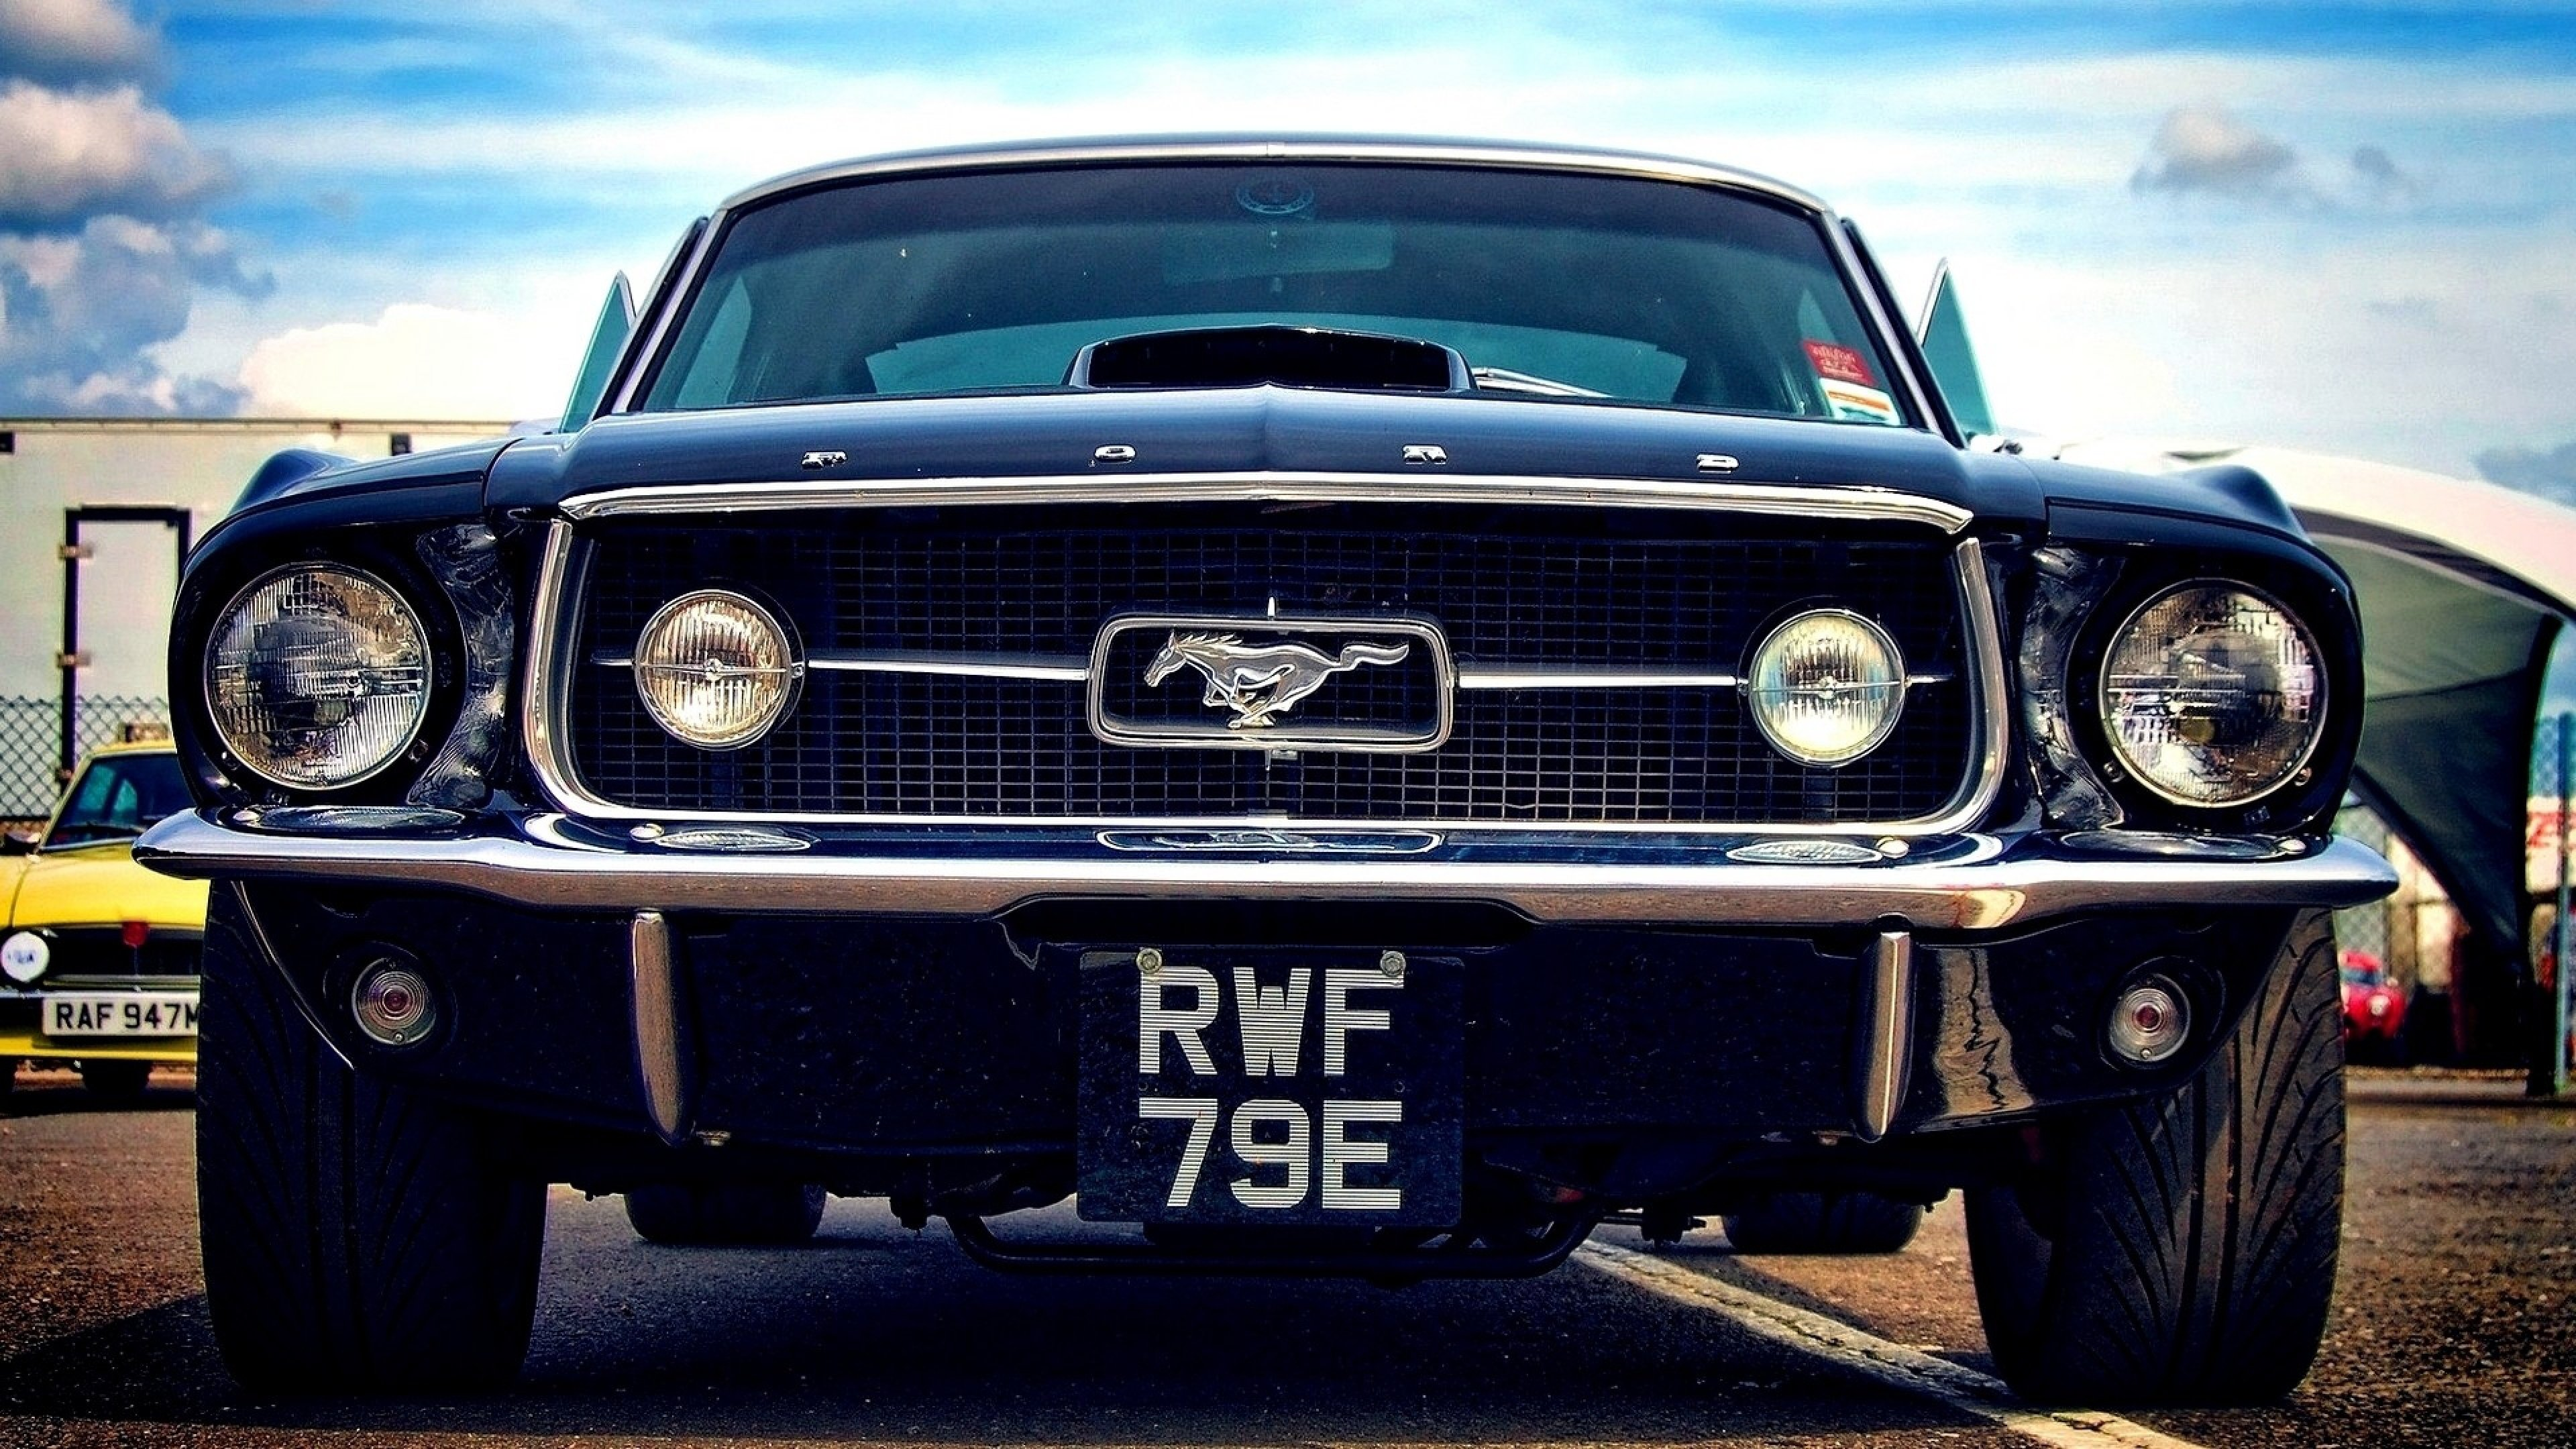 Download Wallpaper 3840x2160 ford mustang auto style turbo 4K 3840x2160